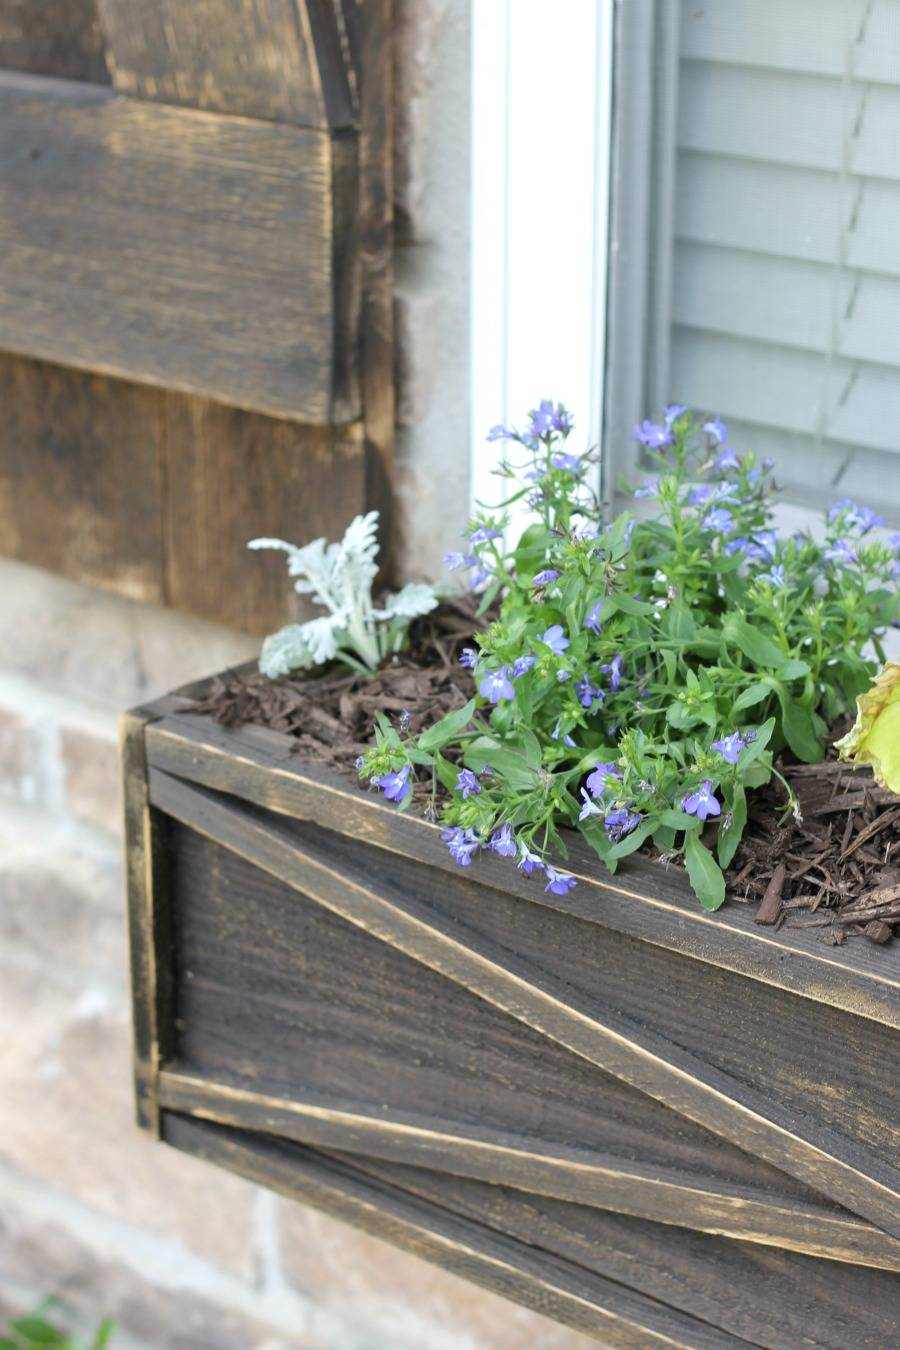 Curb Appeal Ideas - Re-stain Wood Furniture and Flower Boxes